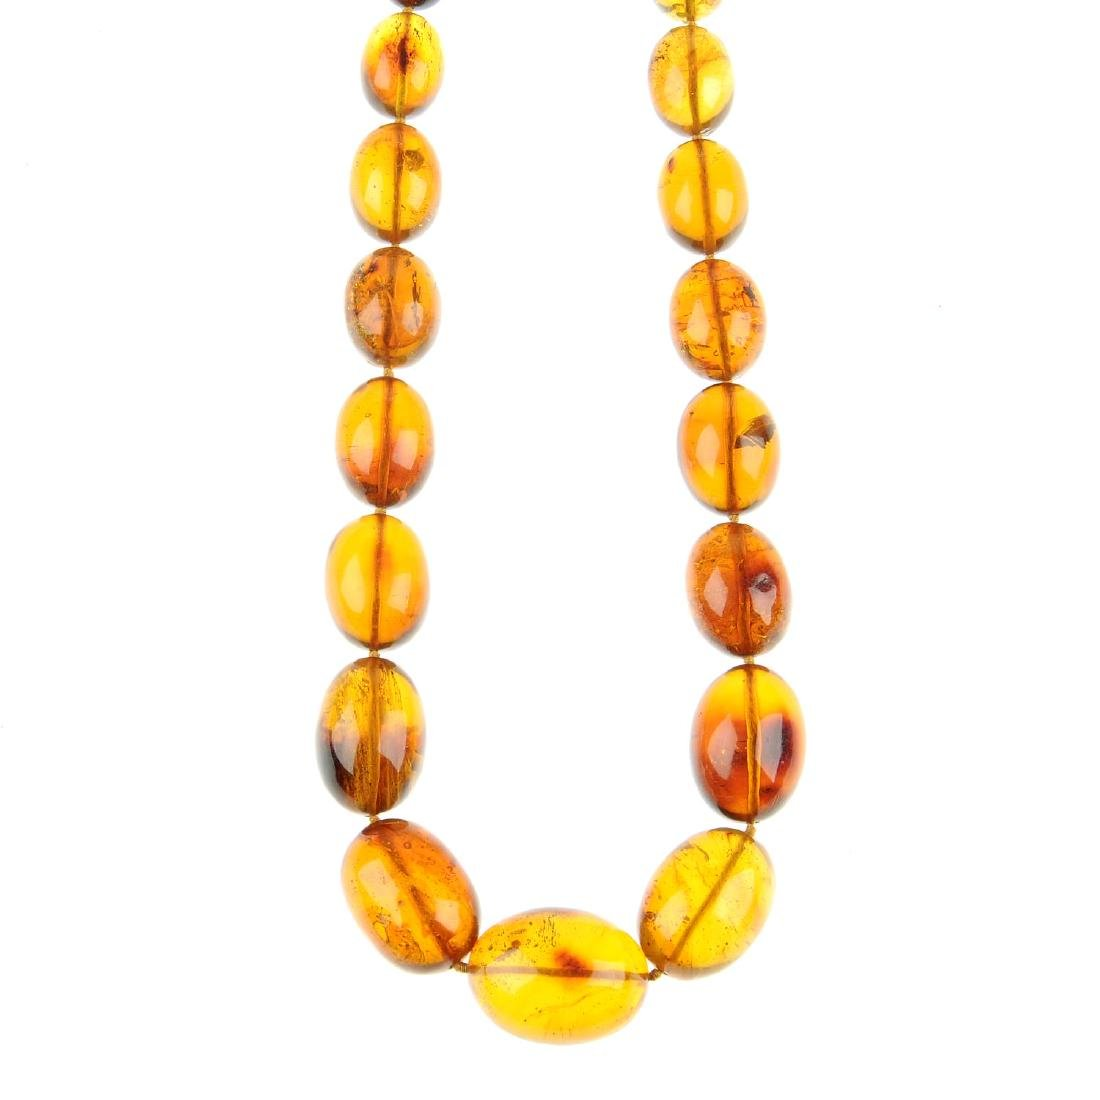 A natural Dominican Republic amber bead necklace.